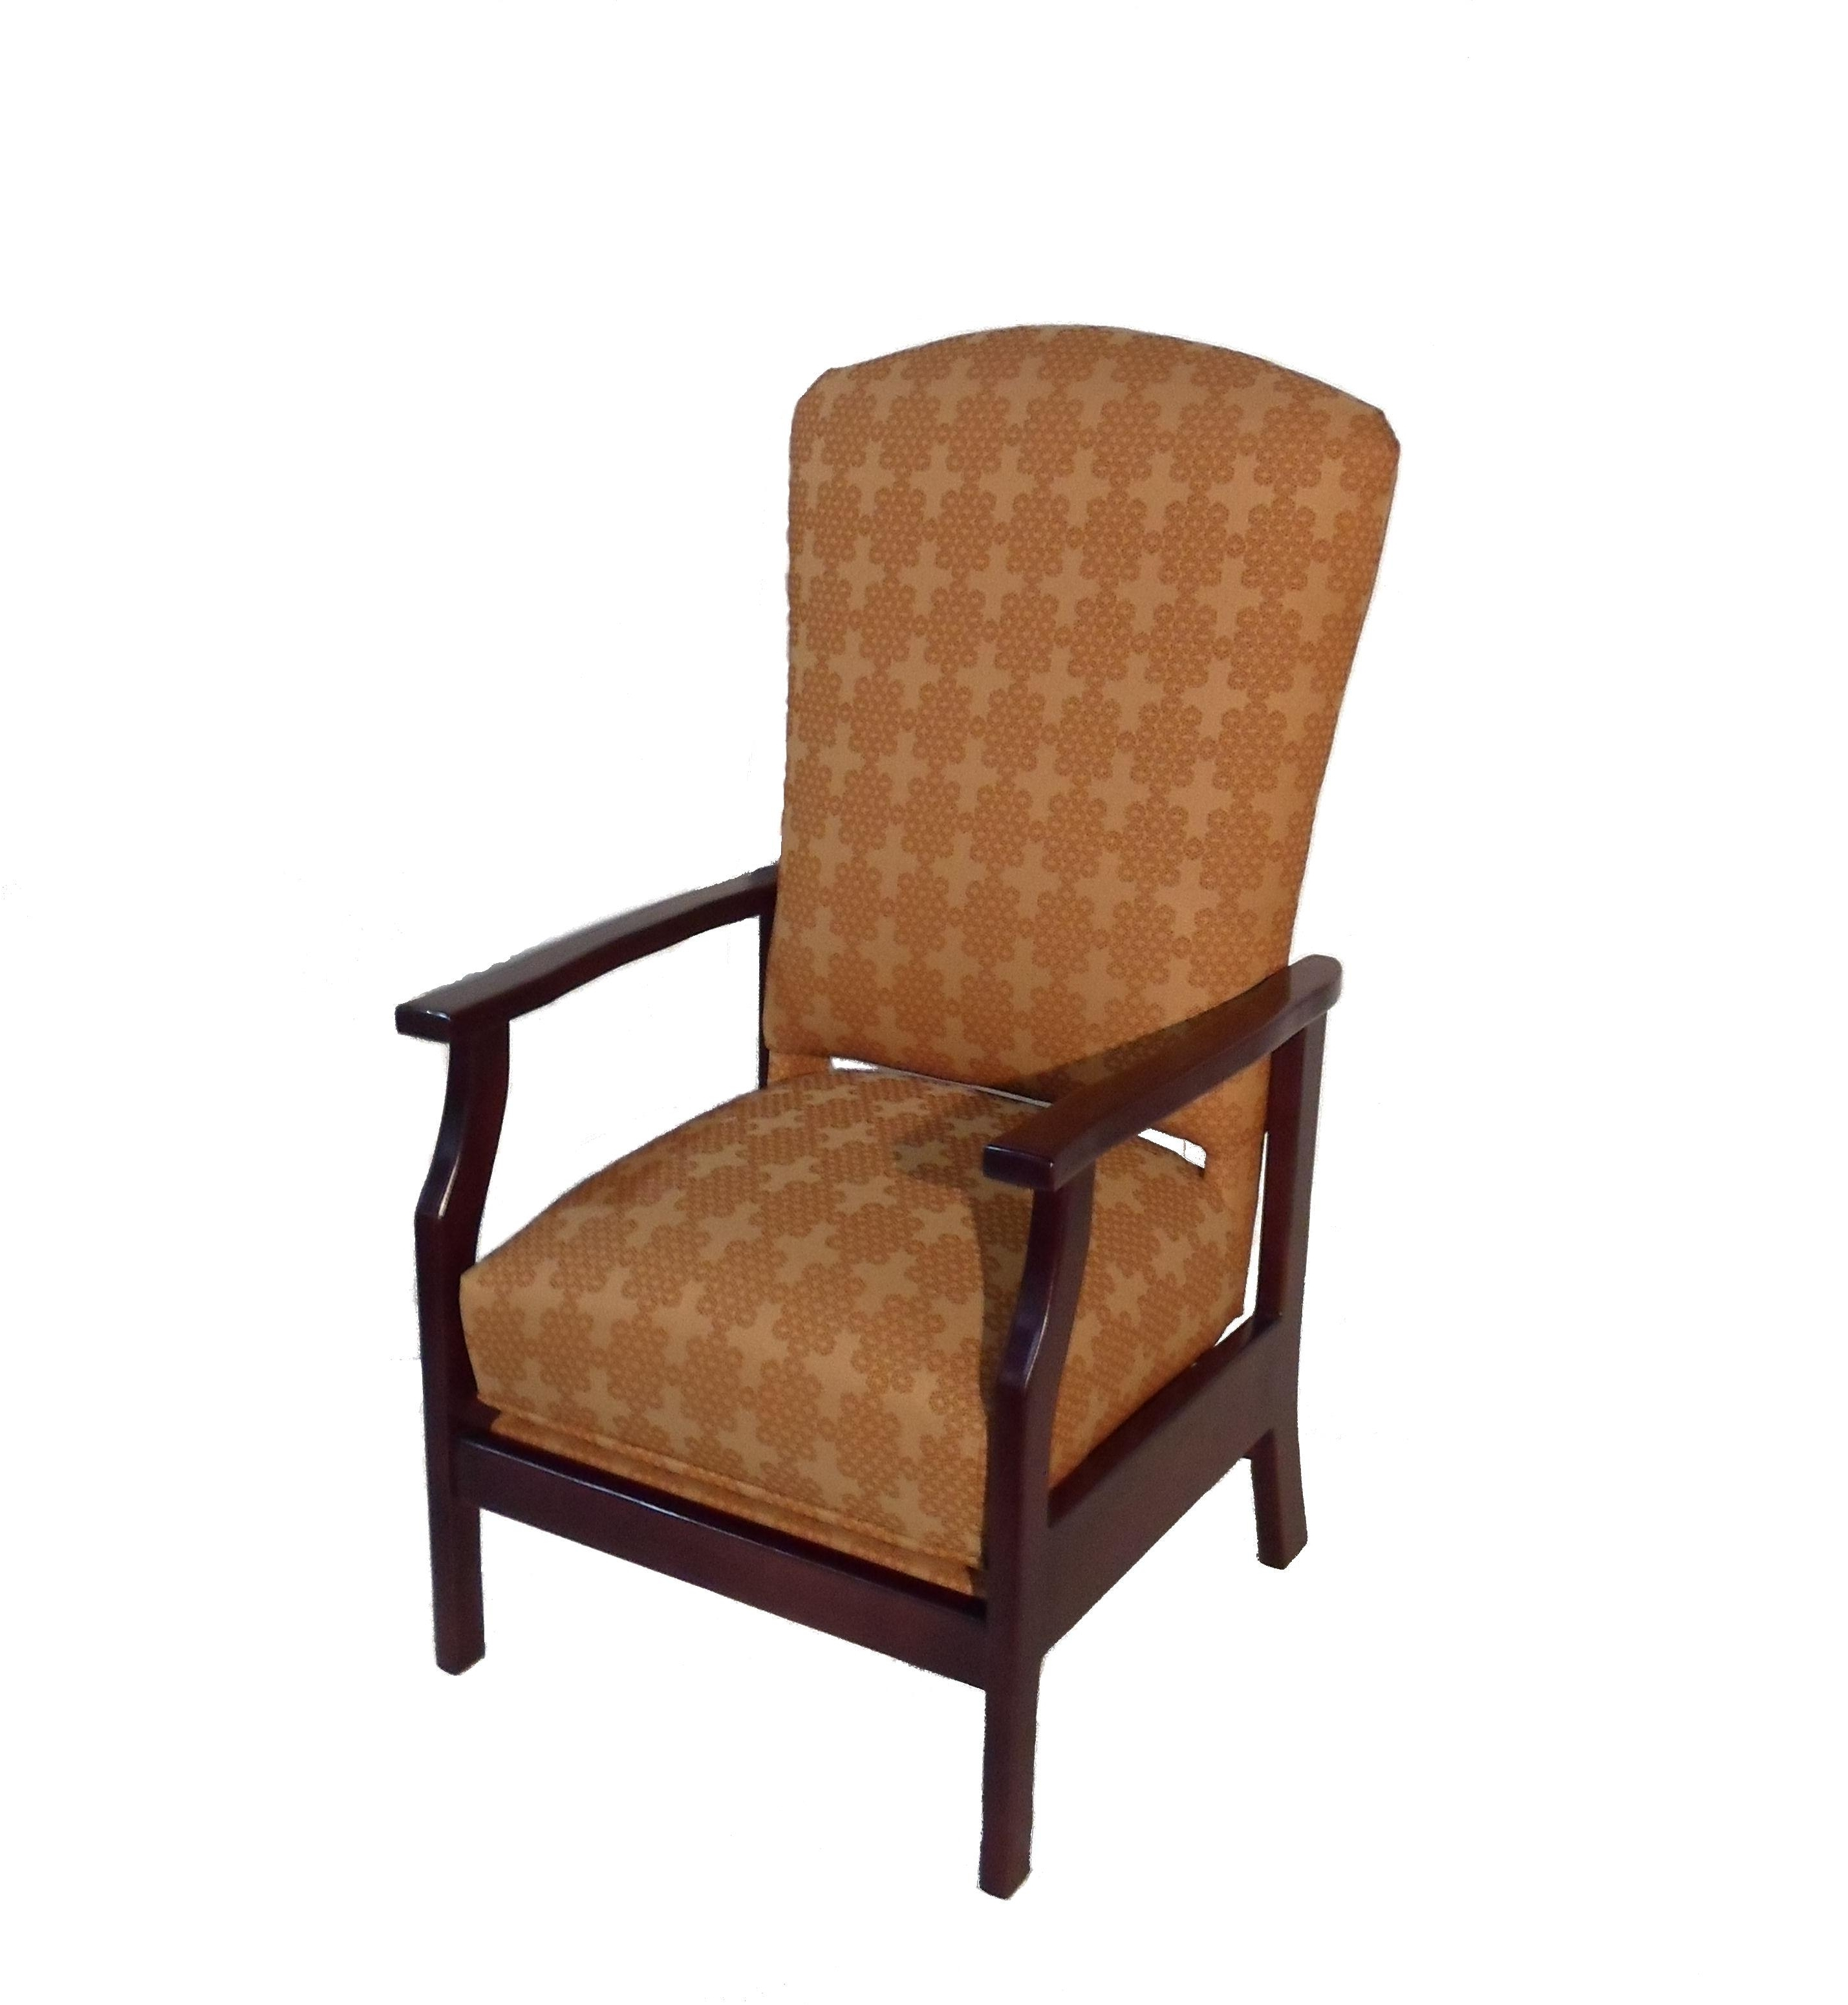 Stationary Rocking Chair With Lumbar Support – Twin Rivers Furnishings Pertaining To Best And Newest Rocking Chairs With Lumbar Support (View 14 of 15)